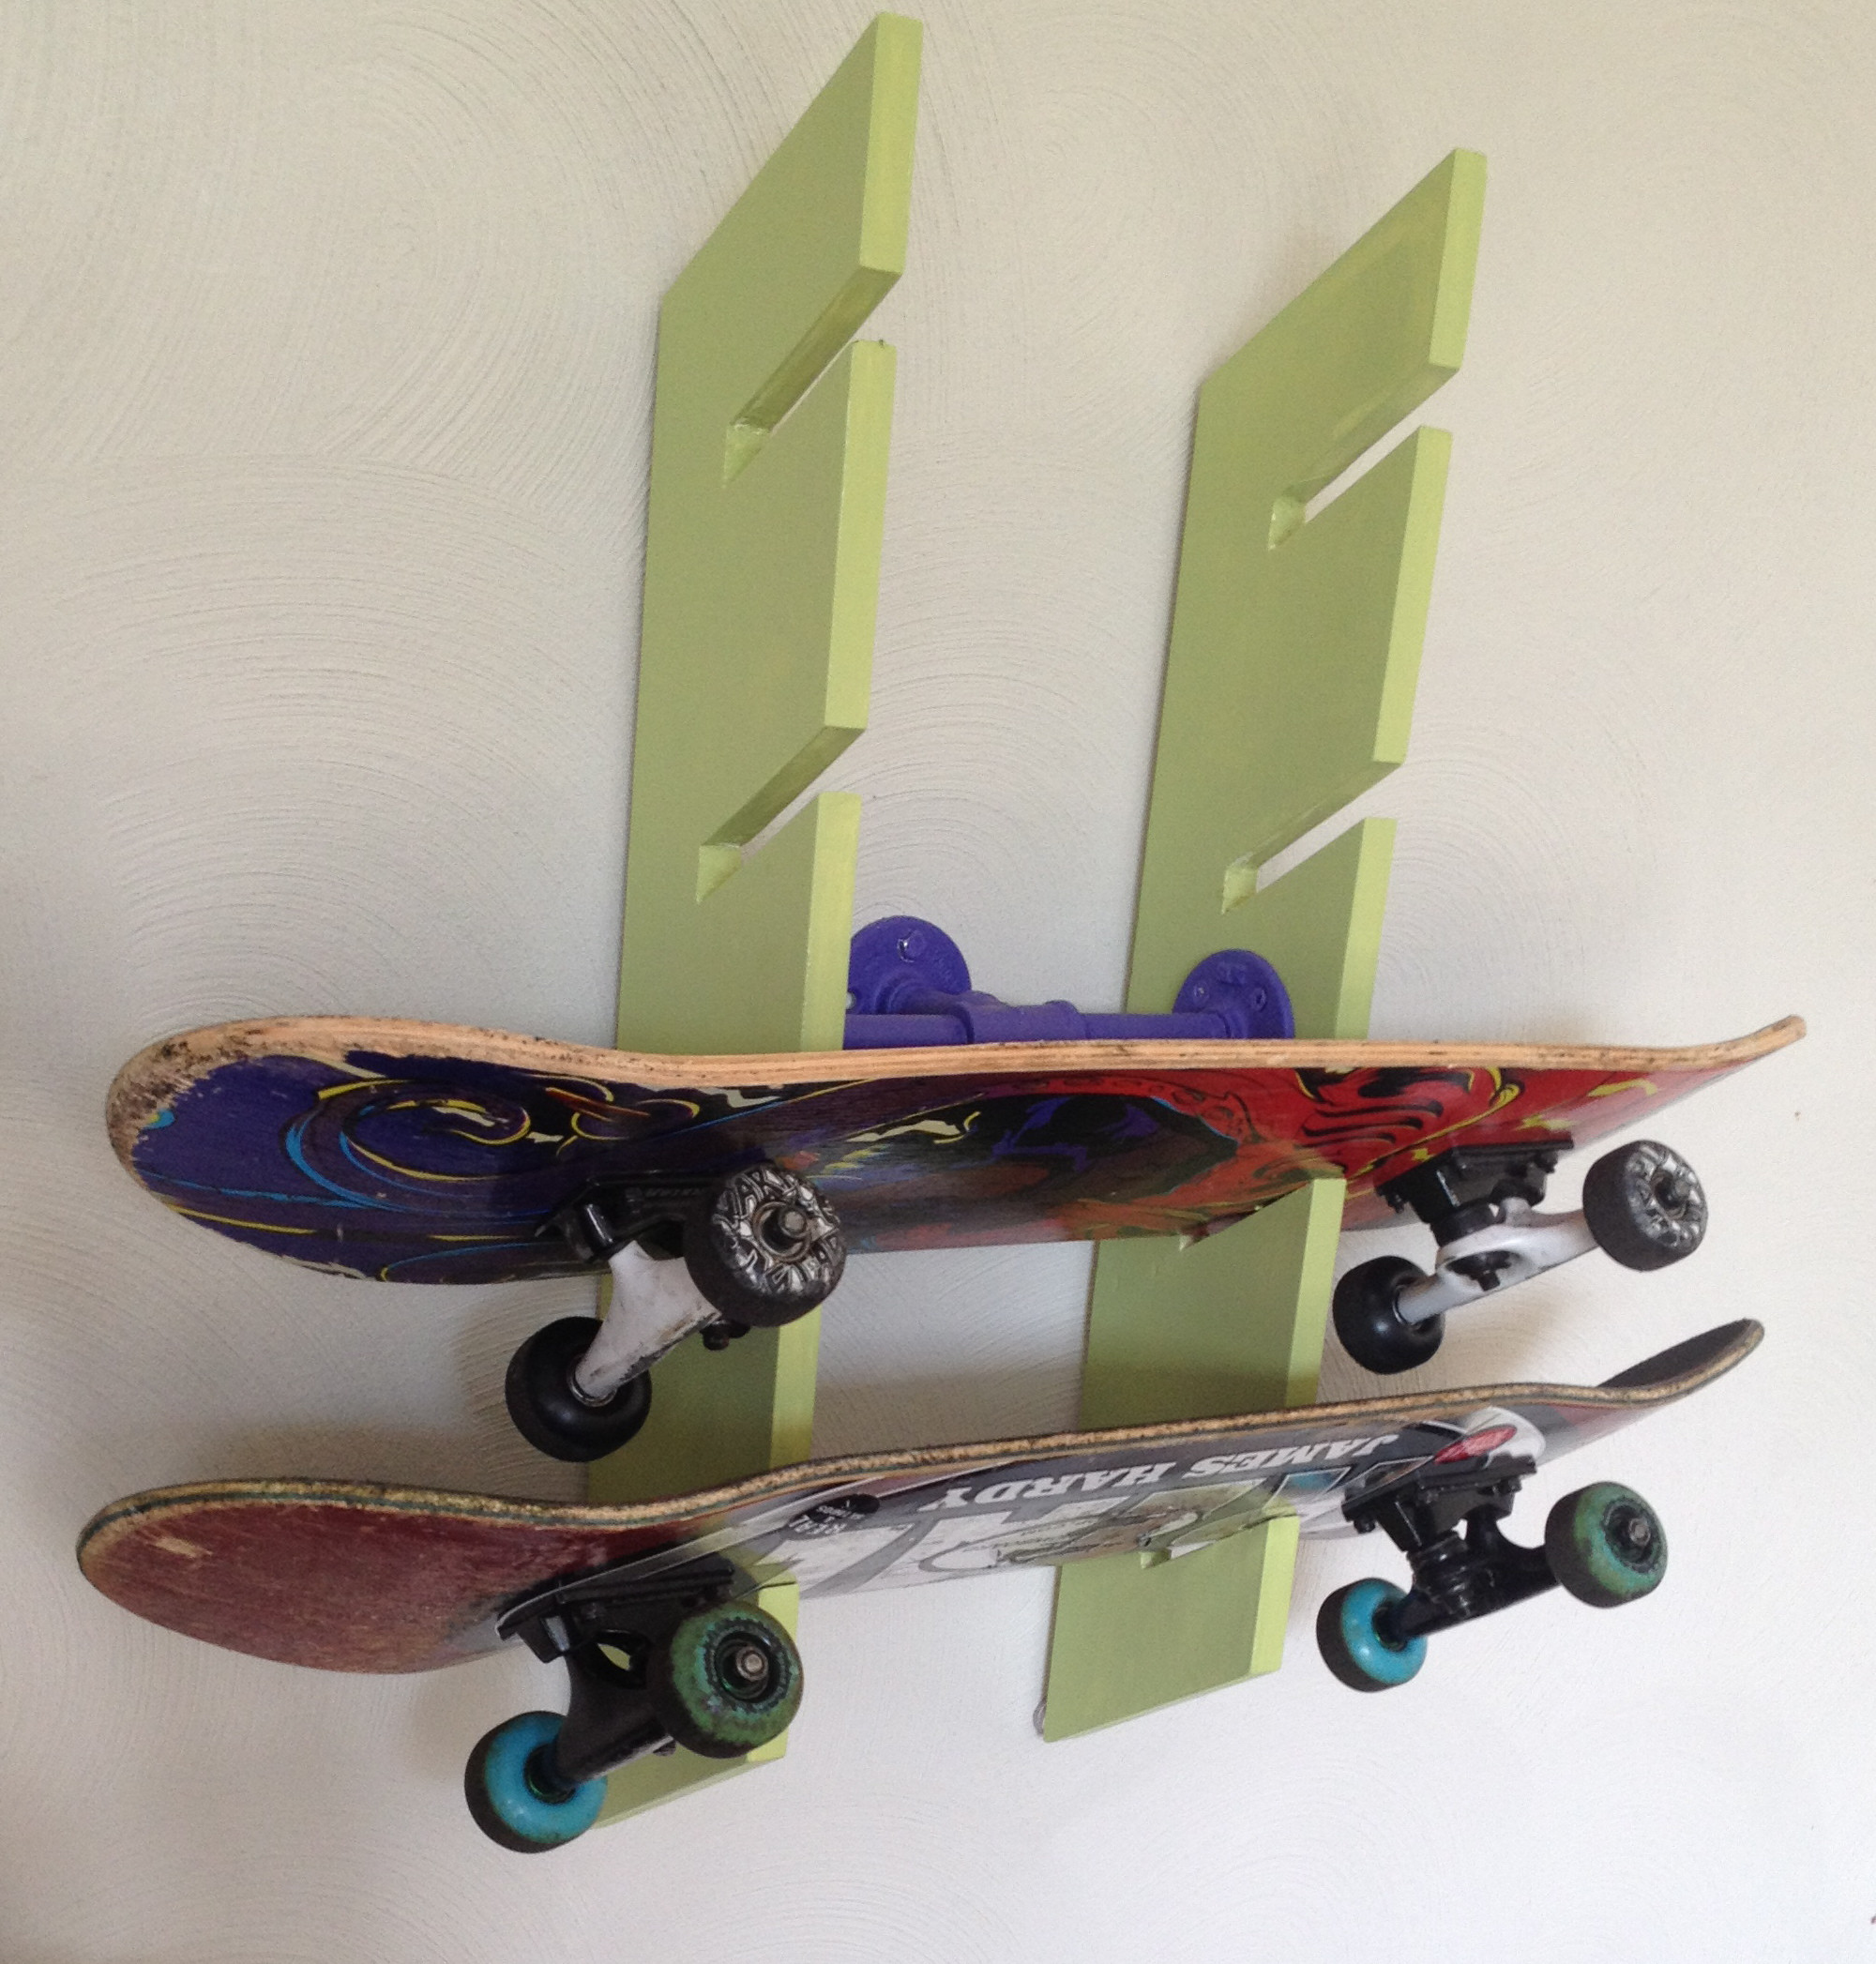 Best ideas about DIY Skateboard Wall Mount . Save or Pin Skateboard Rack Now.